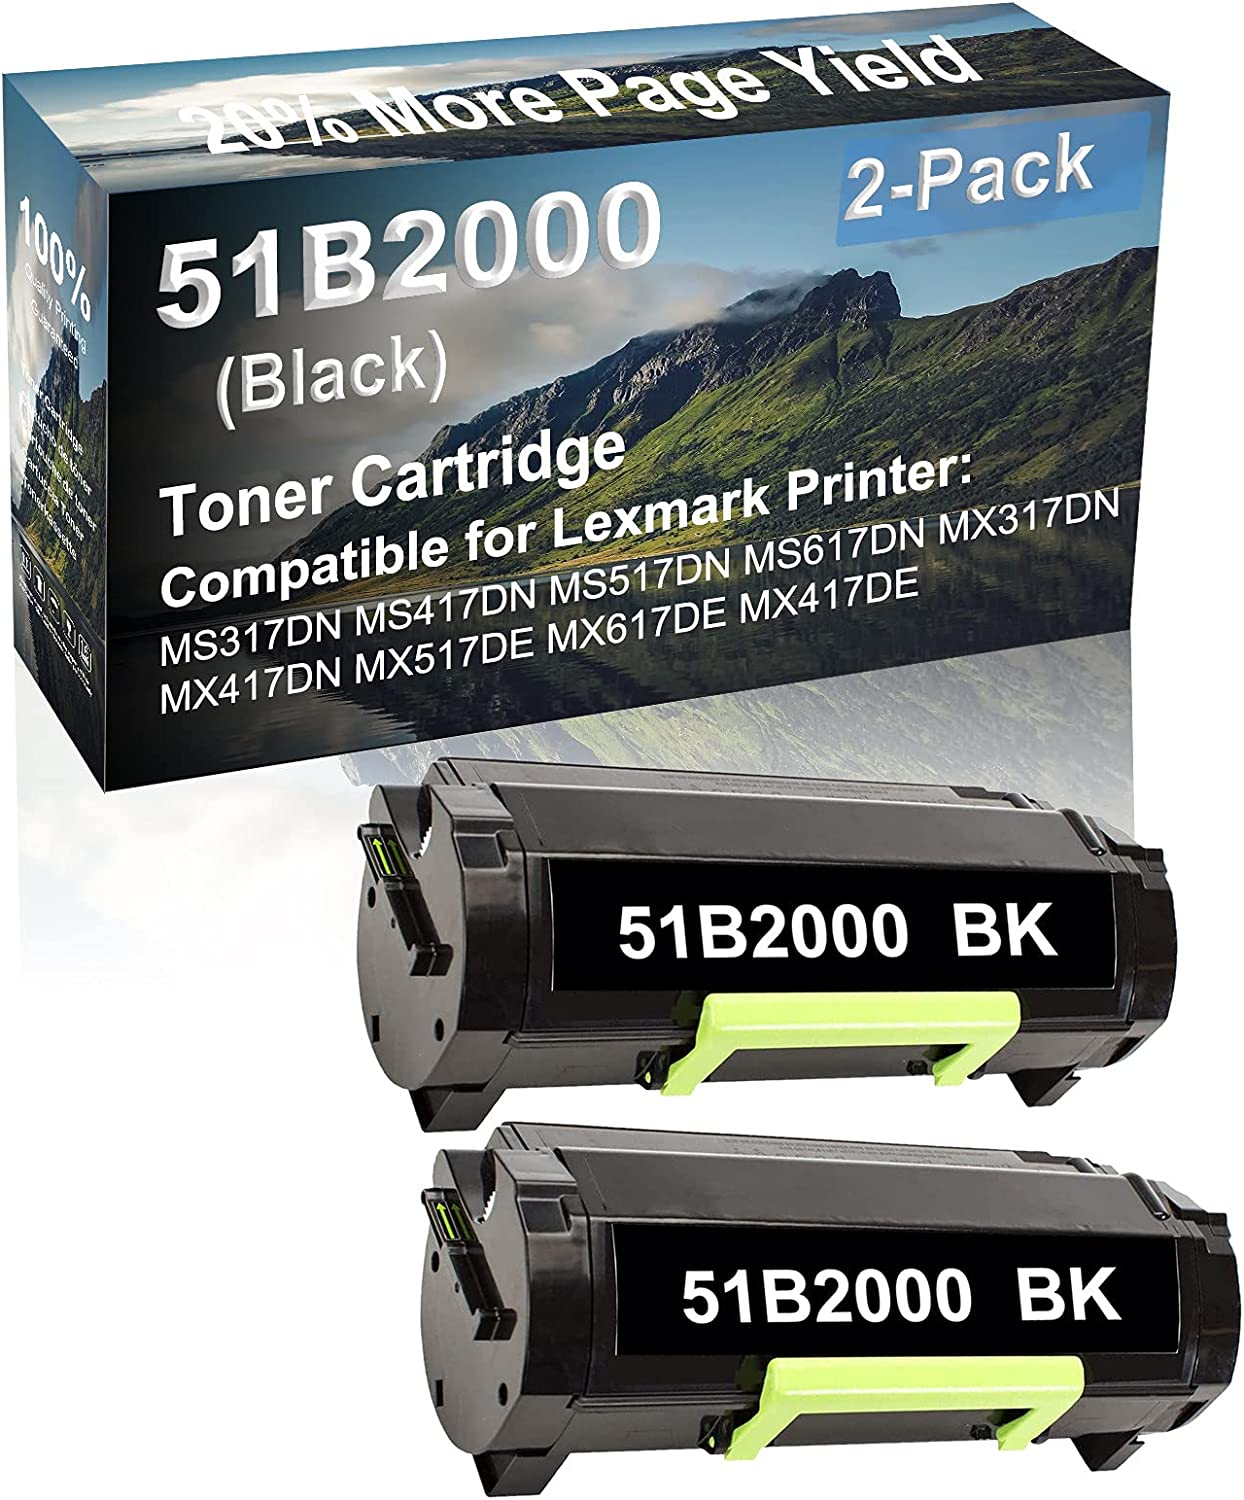 2-Pack Compatible High Yield MS617DN MX317DN MX417DN Printer Cartridge Replacement for Lexmark 51B2000 Toner Cartridge (Black)